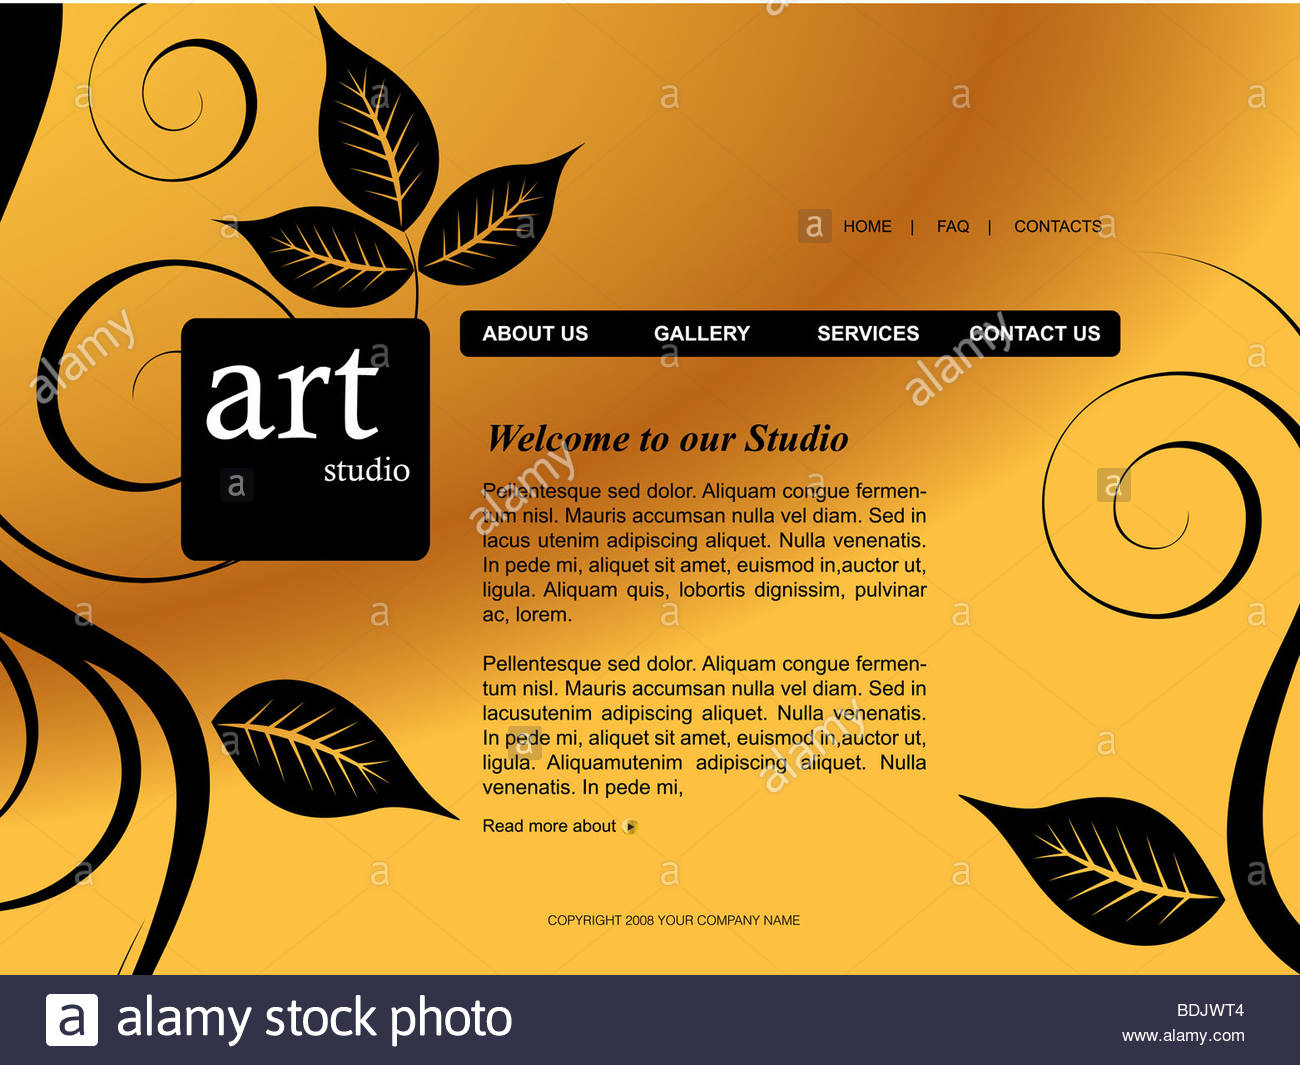 Website template easy to use in adobe flah or illustrator to stock photo website template easy to use in adobe flah or illustrator to export it as a website just edit or replace text and add your sub pronofoot35fo Gallery